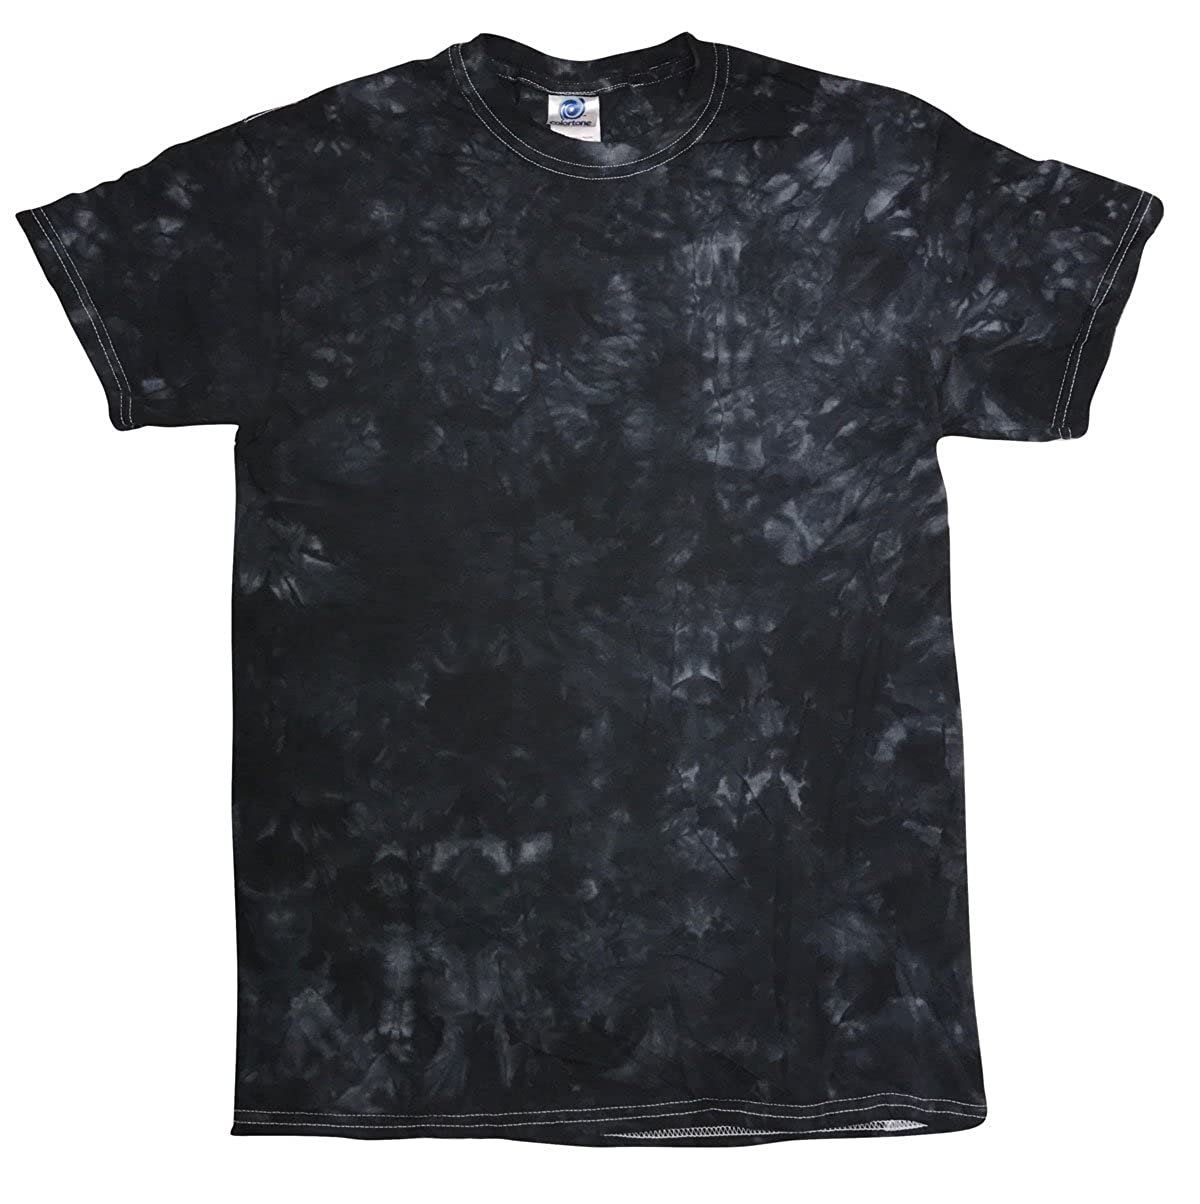 Crystal Wash T-Shirts 100/% Pre-Shrunk Heavyweight Cotton 5.3 oz Adult Small to XXX-Large